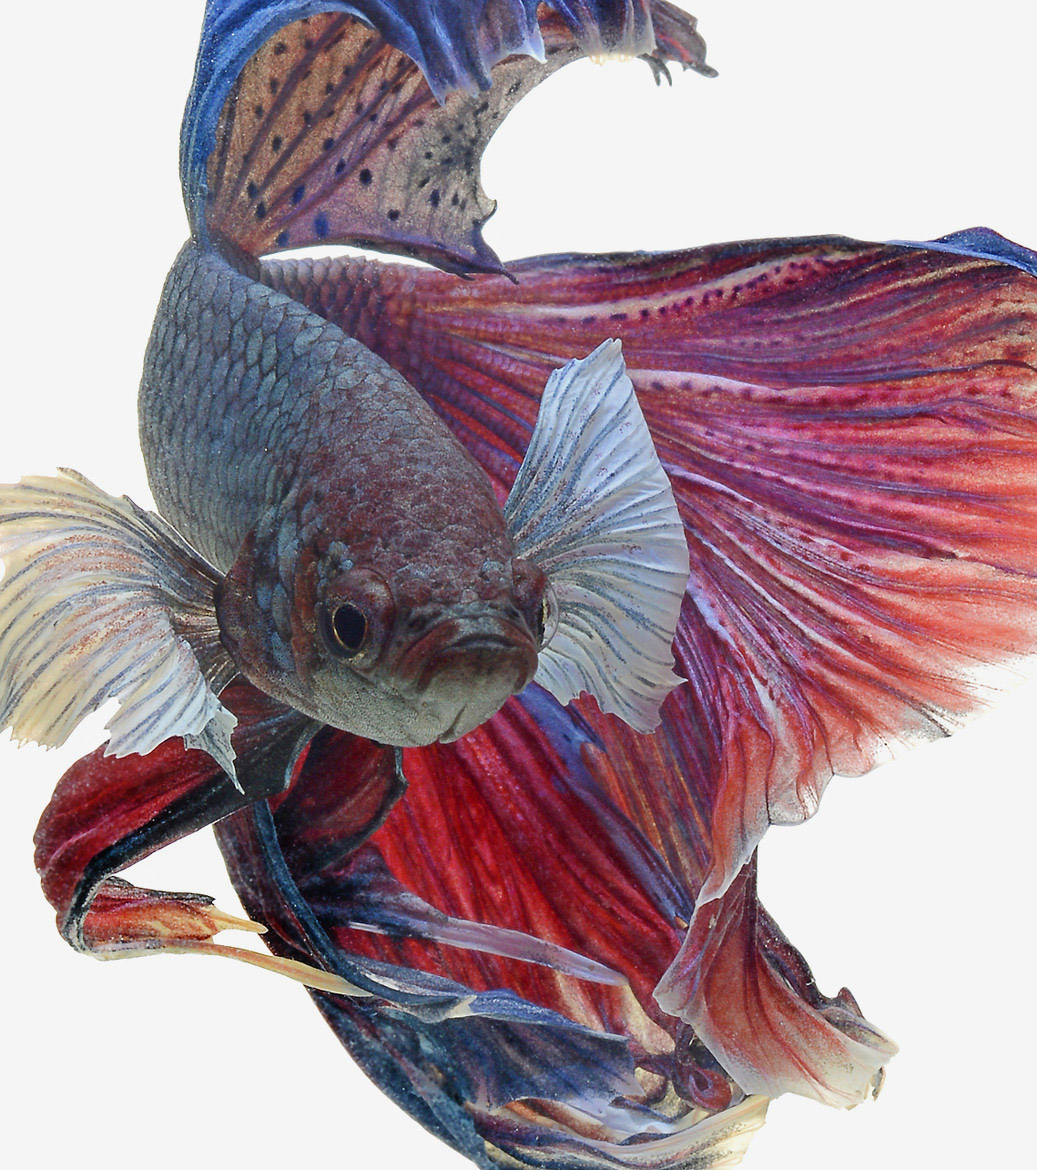 siamese-fighting-fish-visarute-angkatavanich-18